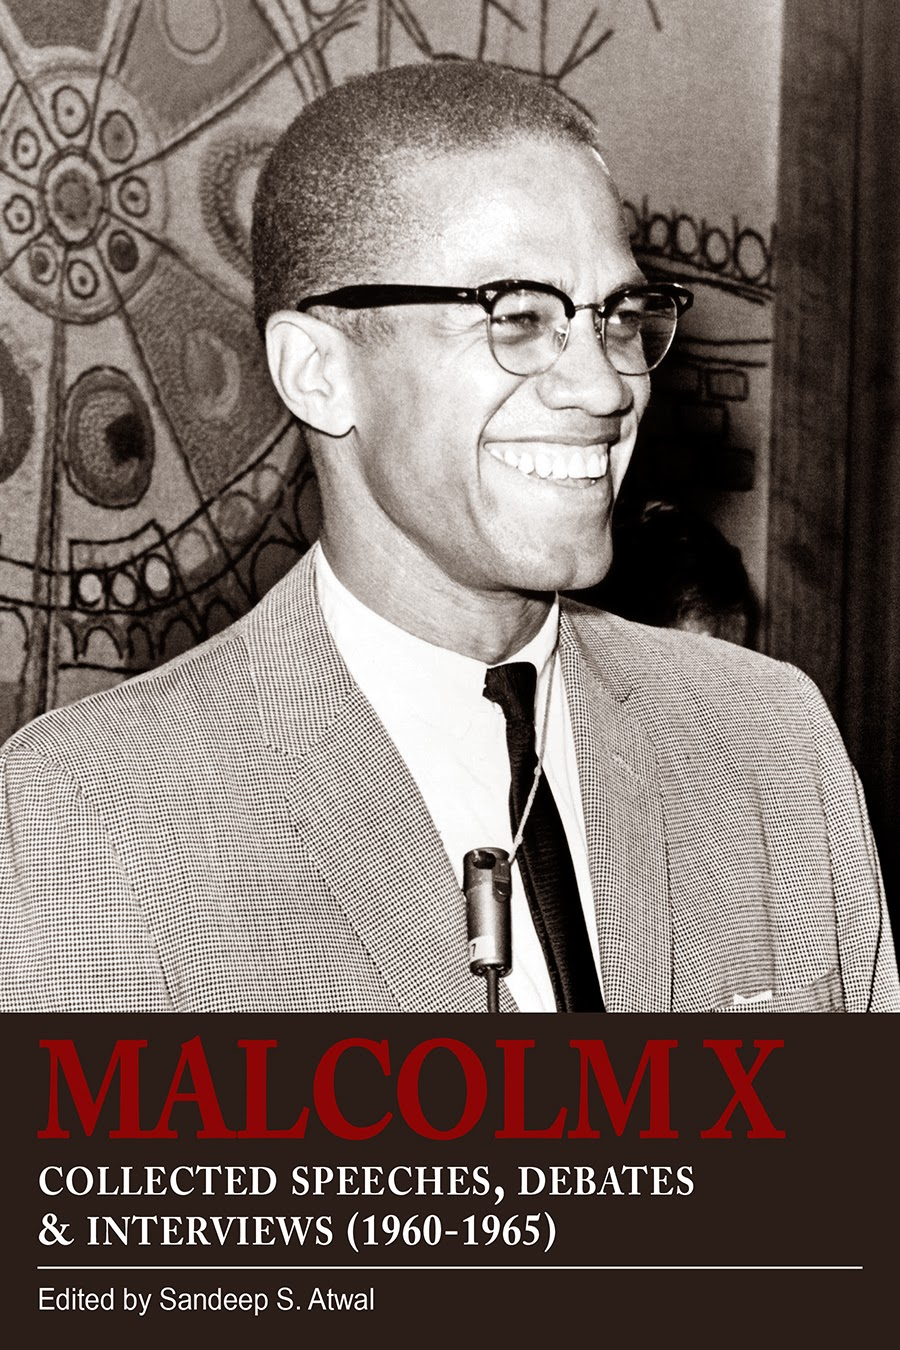 malcolm x citation essay